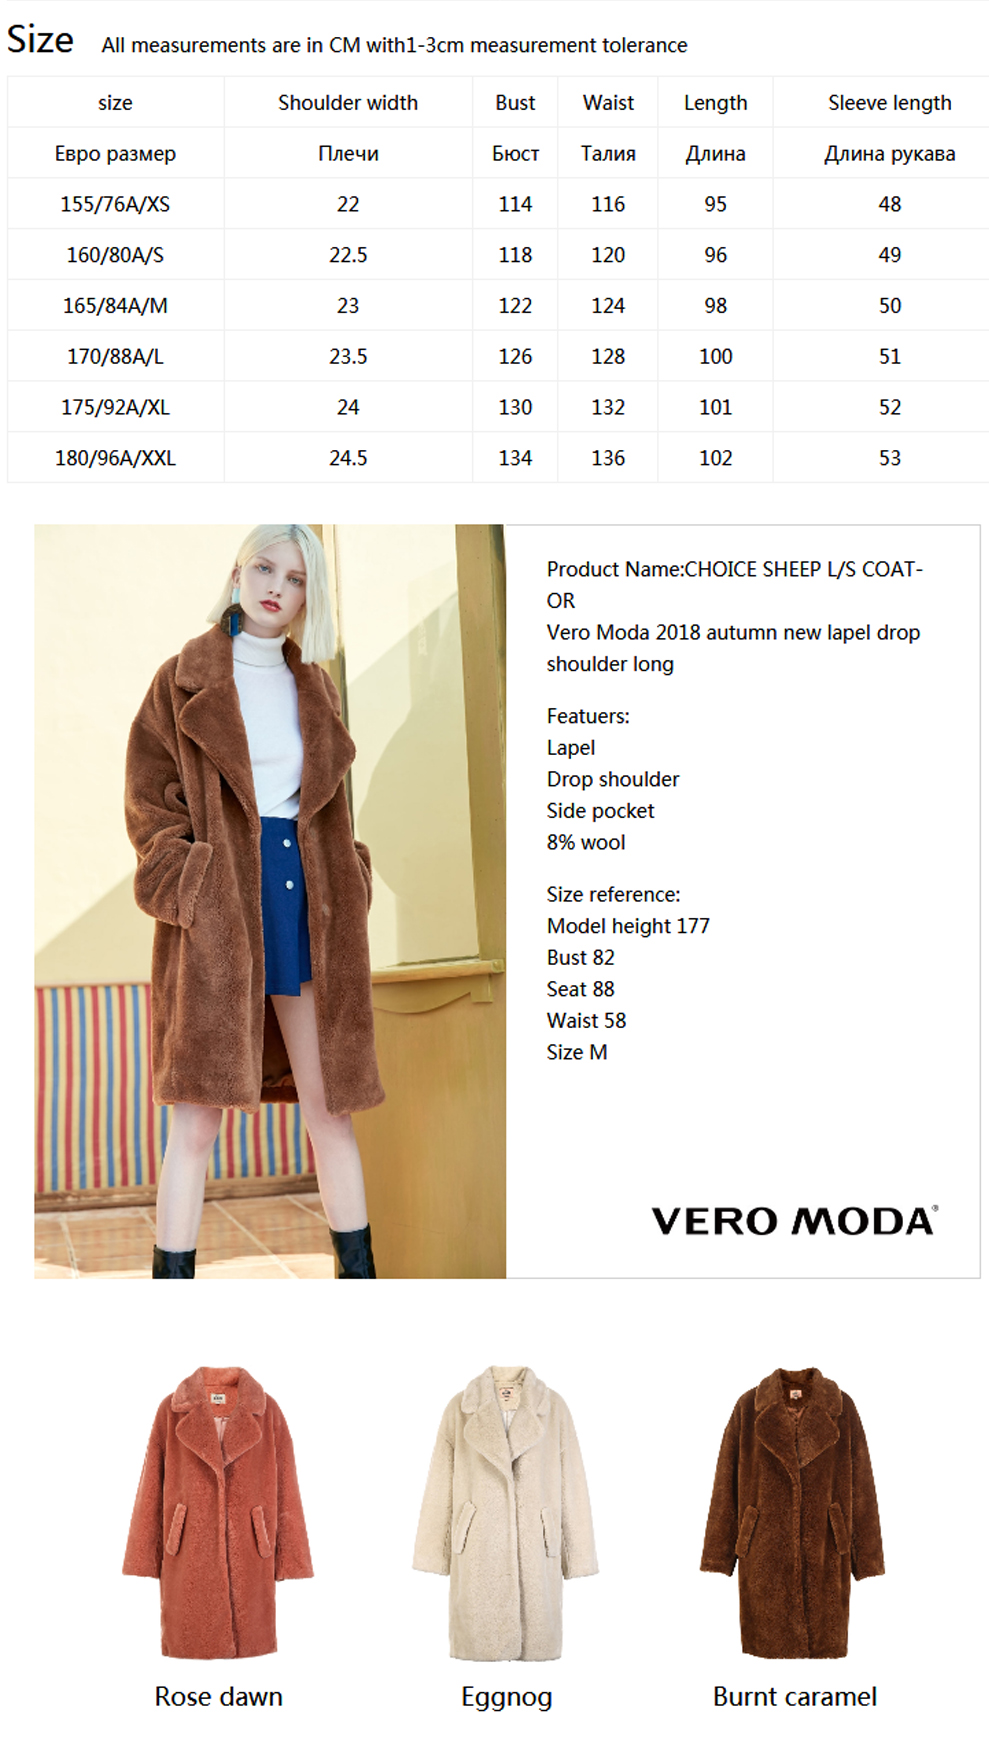 Vero Moda lapel drop shoulder long teddy bear winter coat jacket | 318309503 9